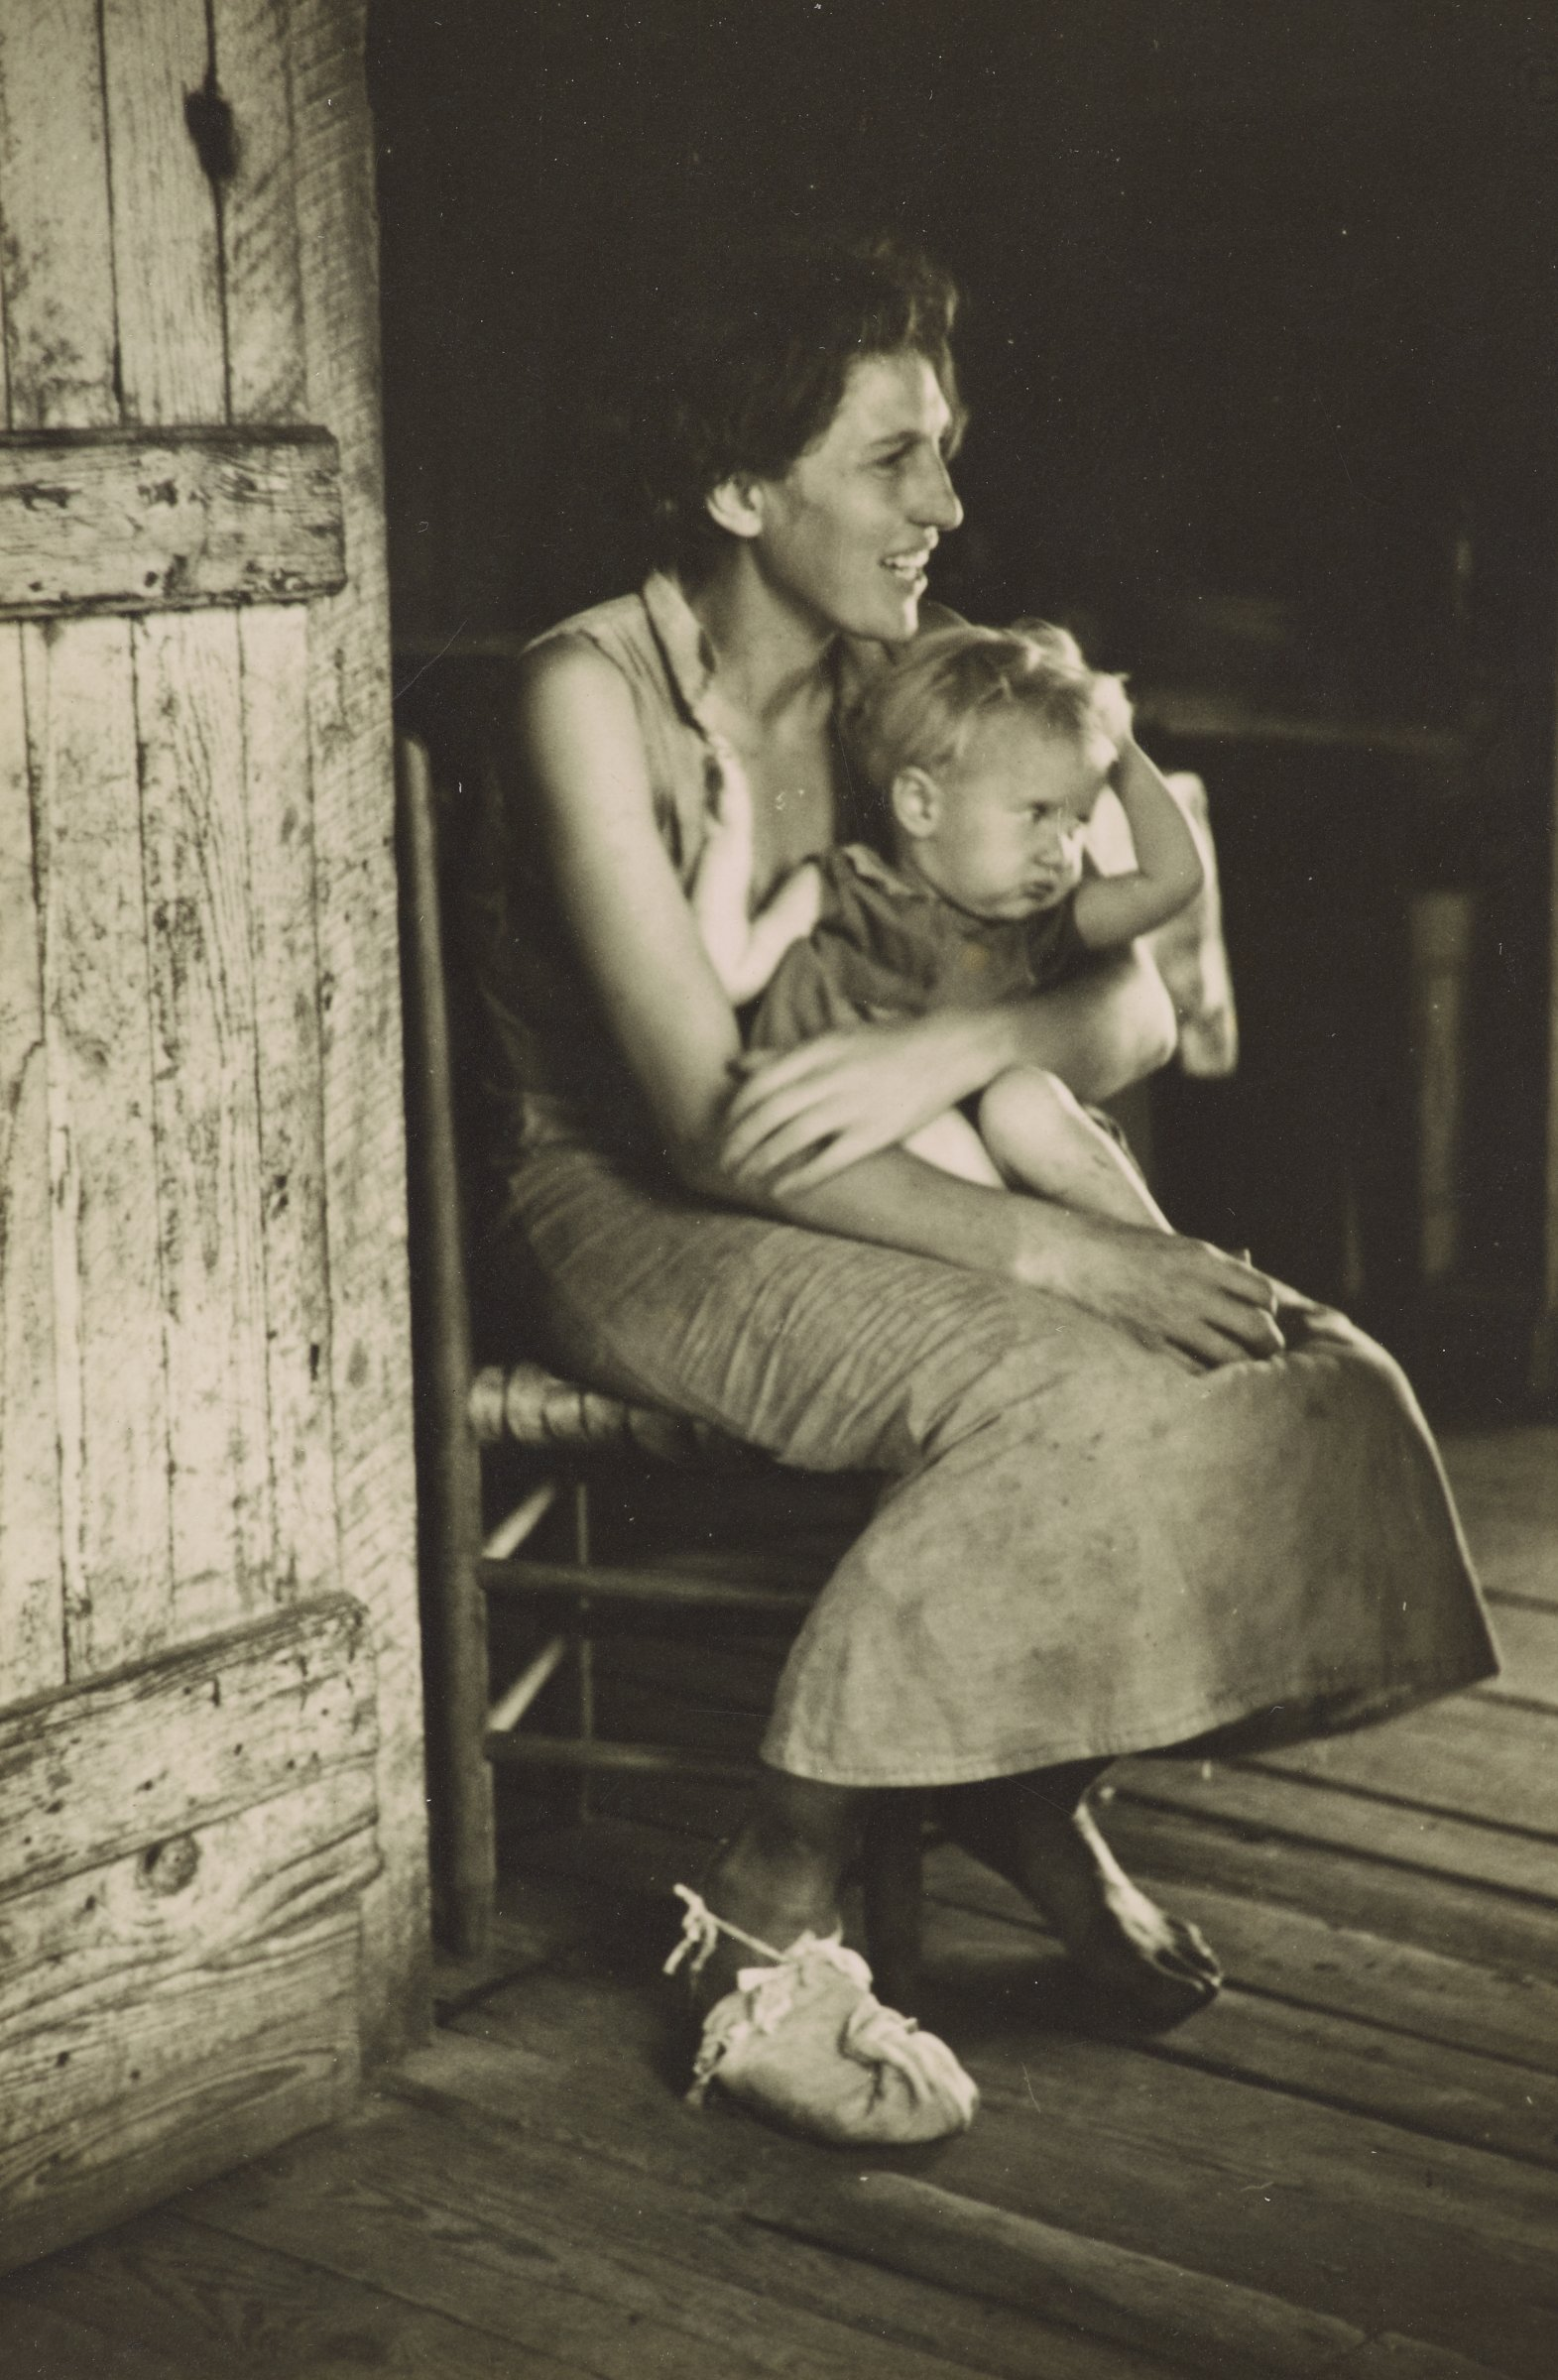 In this black and white photograph, a woman sits to the right of a door, holding a young, blonde child in her arms. The child holds her head and curls her legs on the woman's lap. The woman has dark hair and is wearing a sleeveless dress and one shoe. She is smiling broadly. The black and white photograph is adhered to a buff mount.